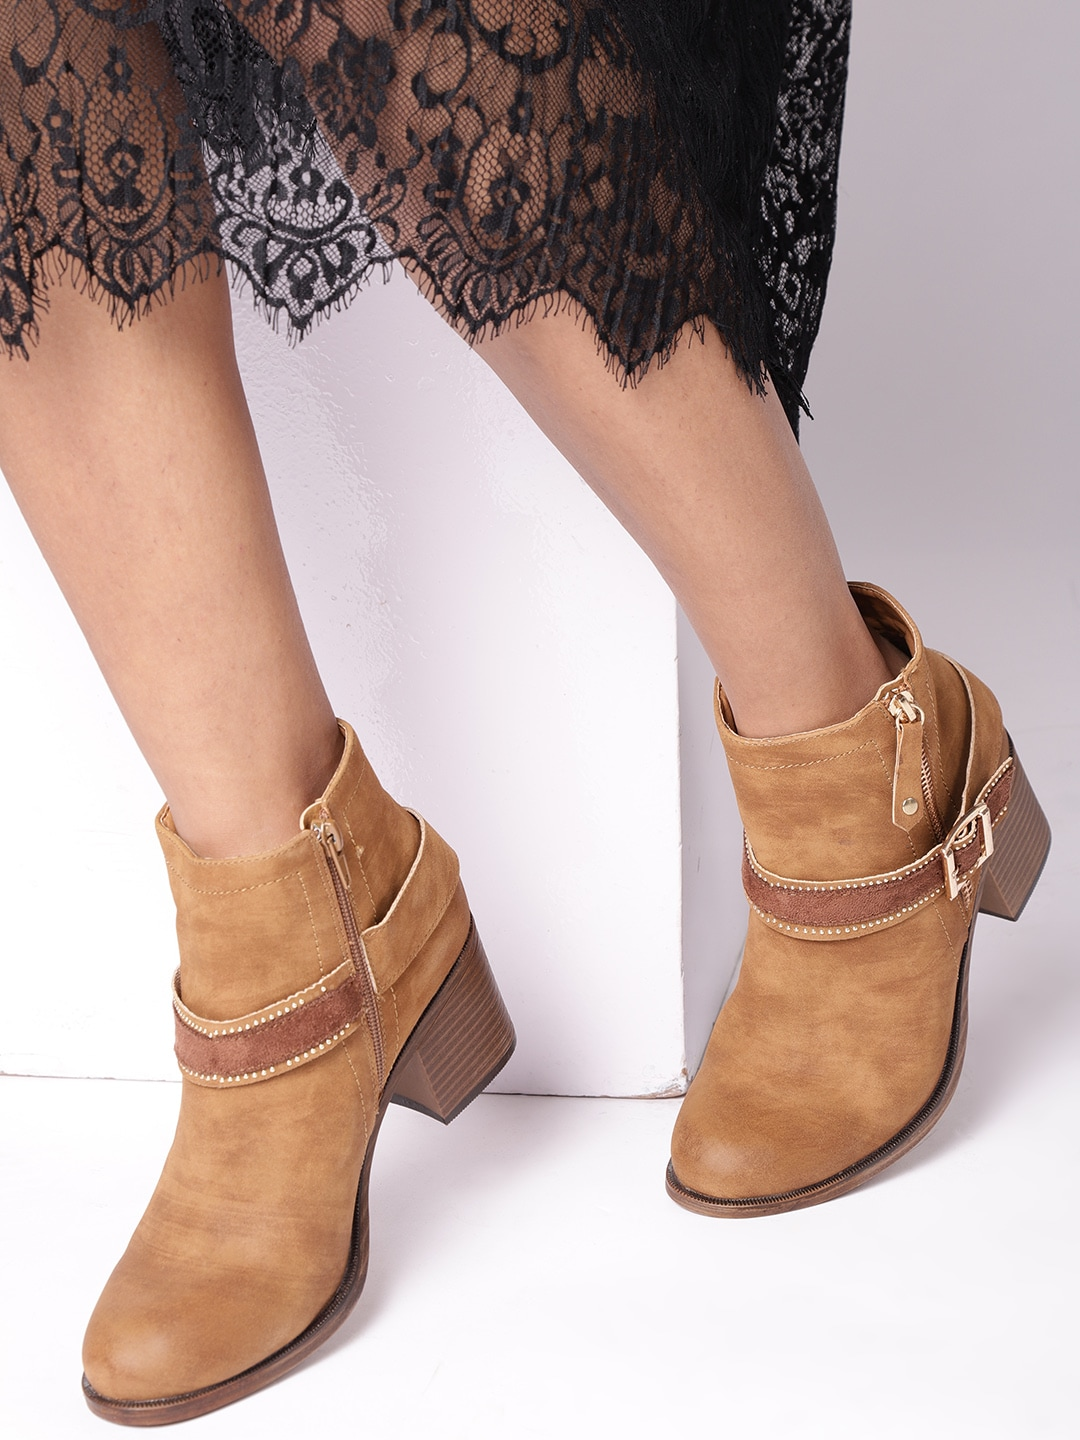 Womens Boots - Buy Boots for Women Online in India  40e3d49b80